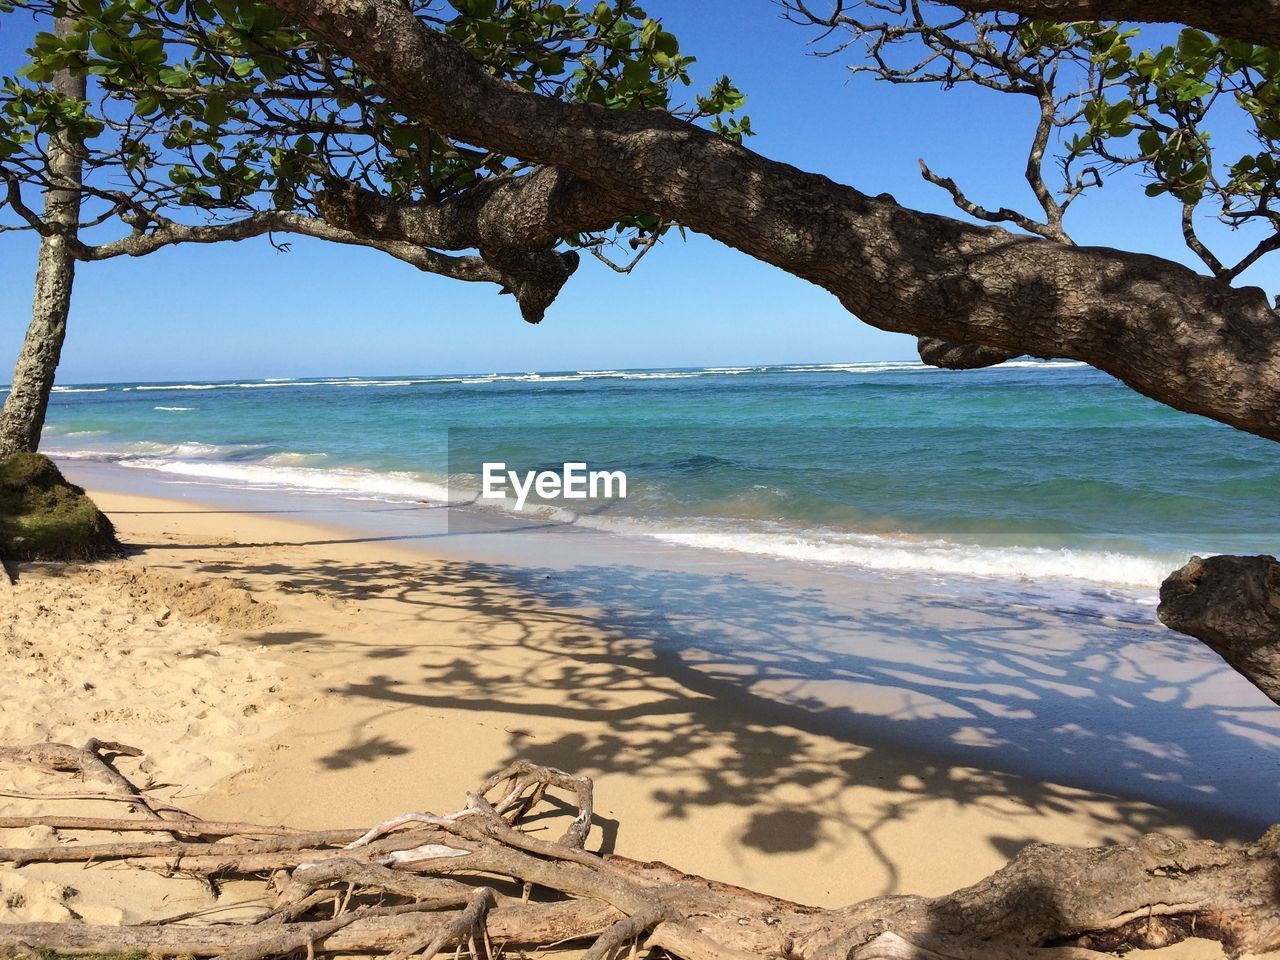 sea, nature, beach, beauty in nature, shore, tree, scenics, water, sand, sunlight, day, tranquility, horizon over water, outdoors, branch, tranquil scene, no people, sky, wave